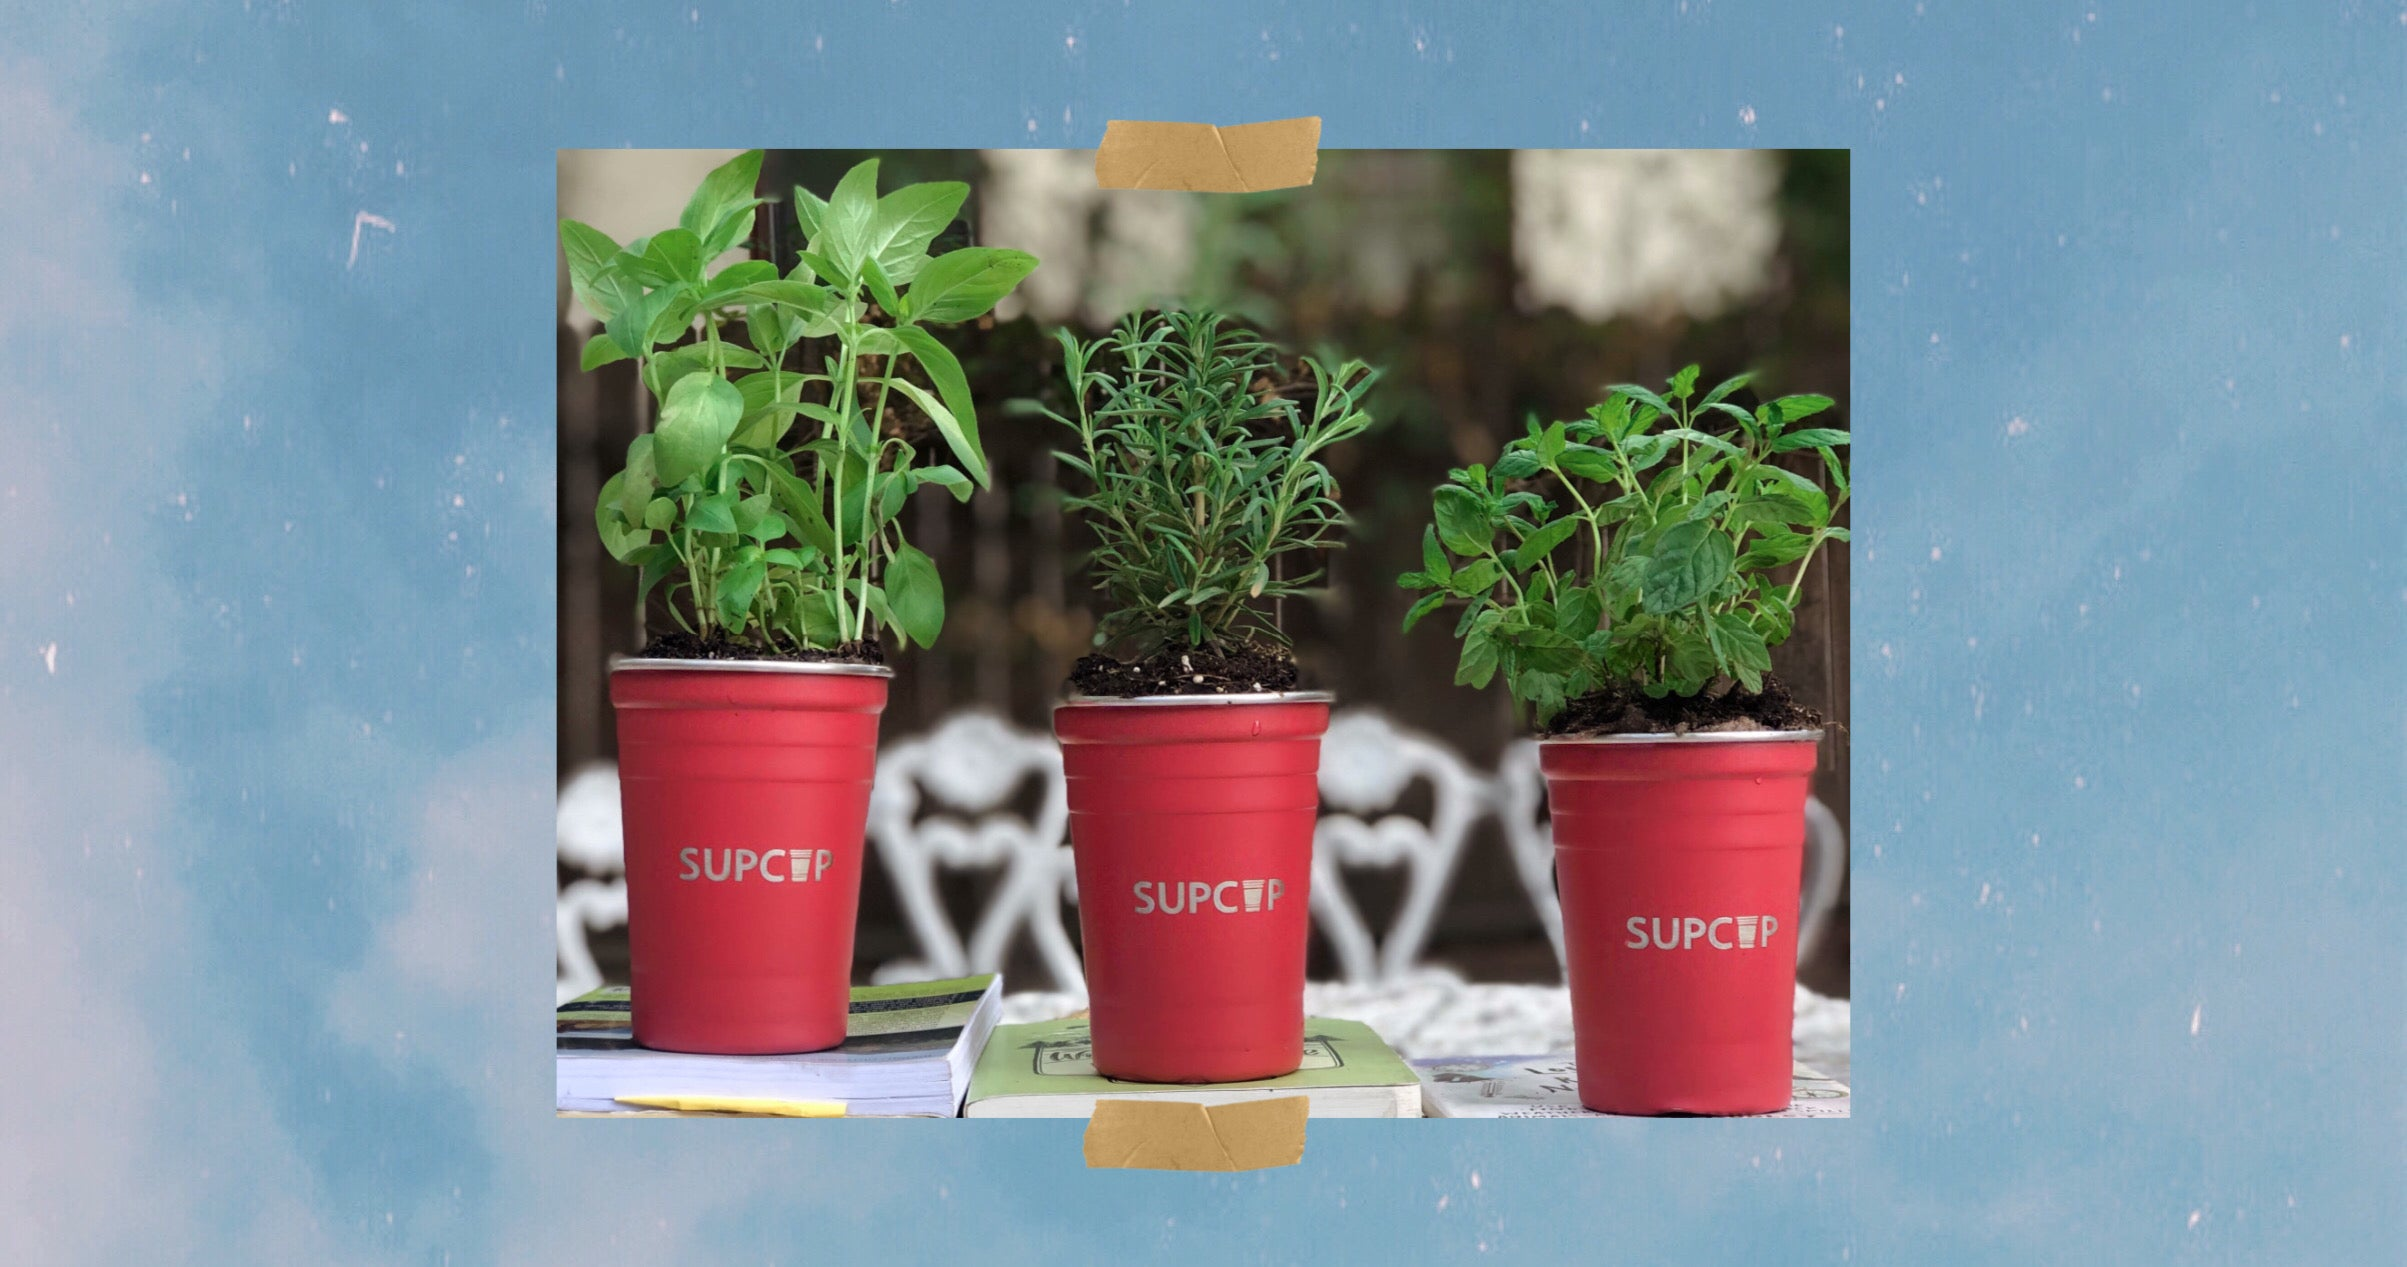 supcups red party cups filled with growing herbs